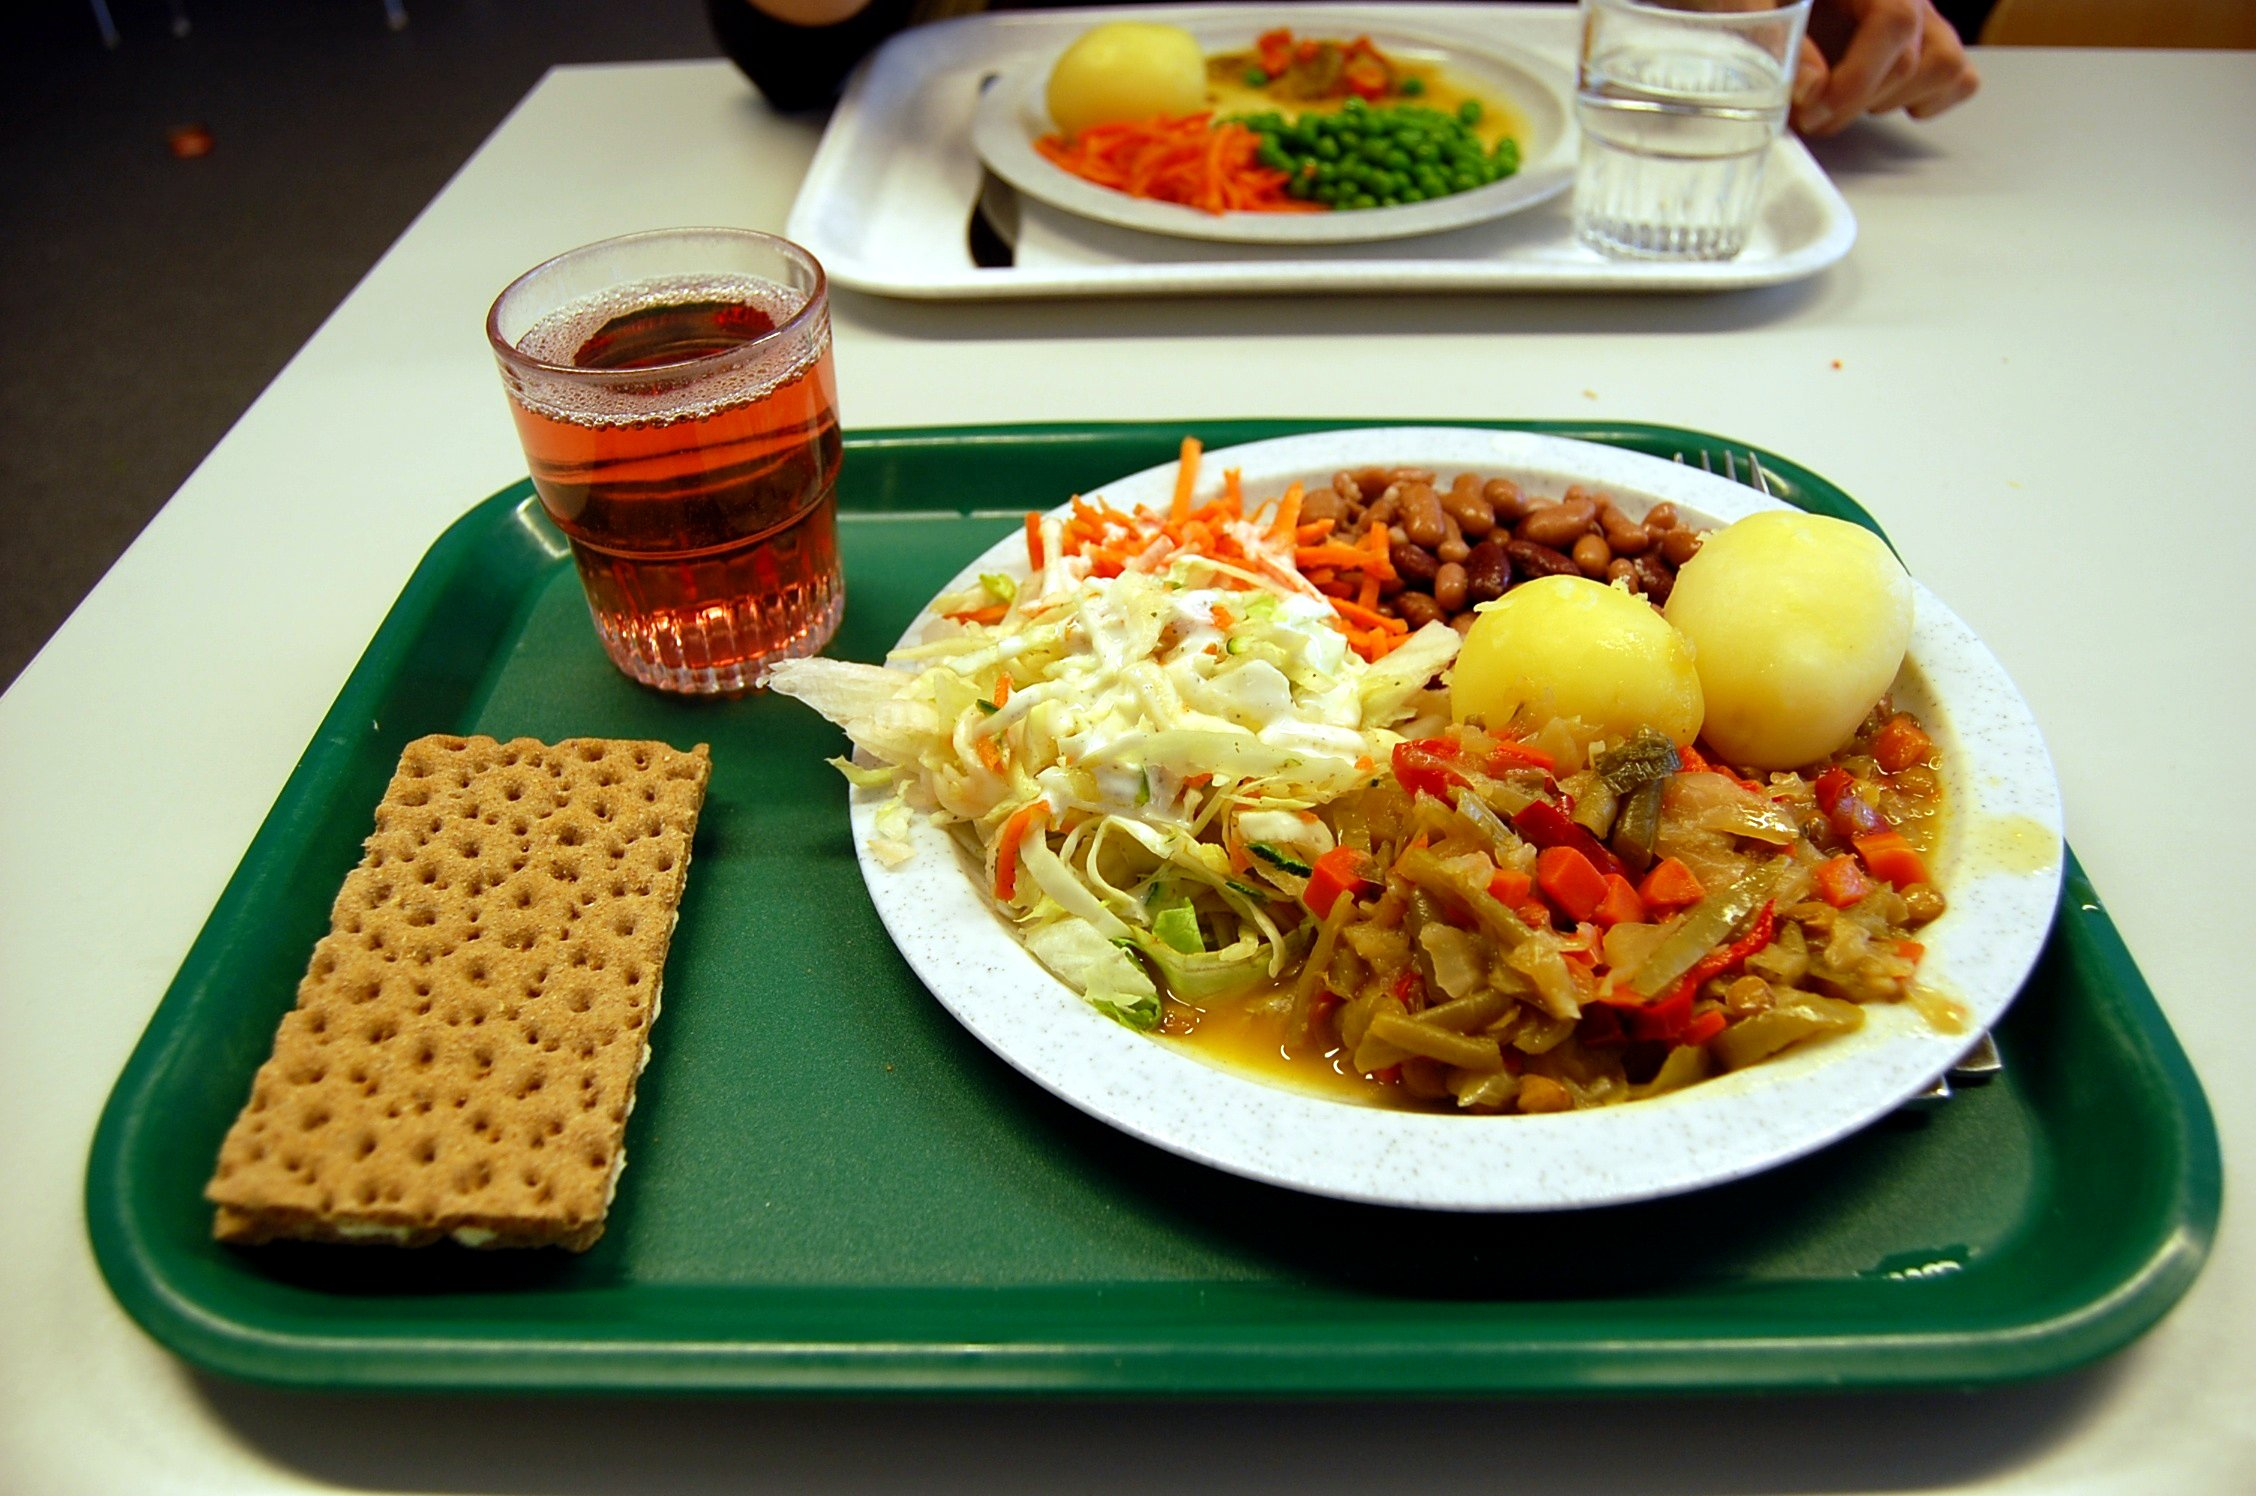 File:School lunch.jpg - Wikimedia Commons